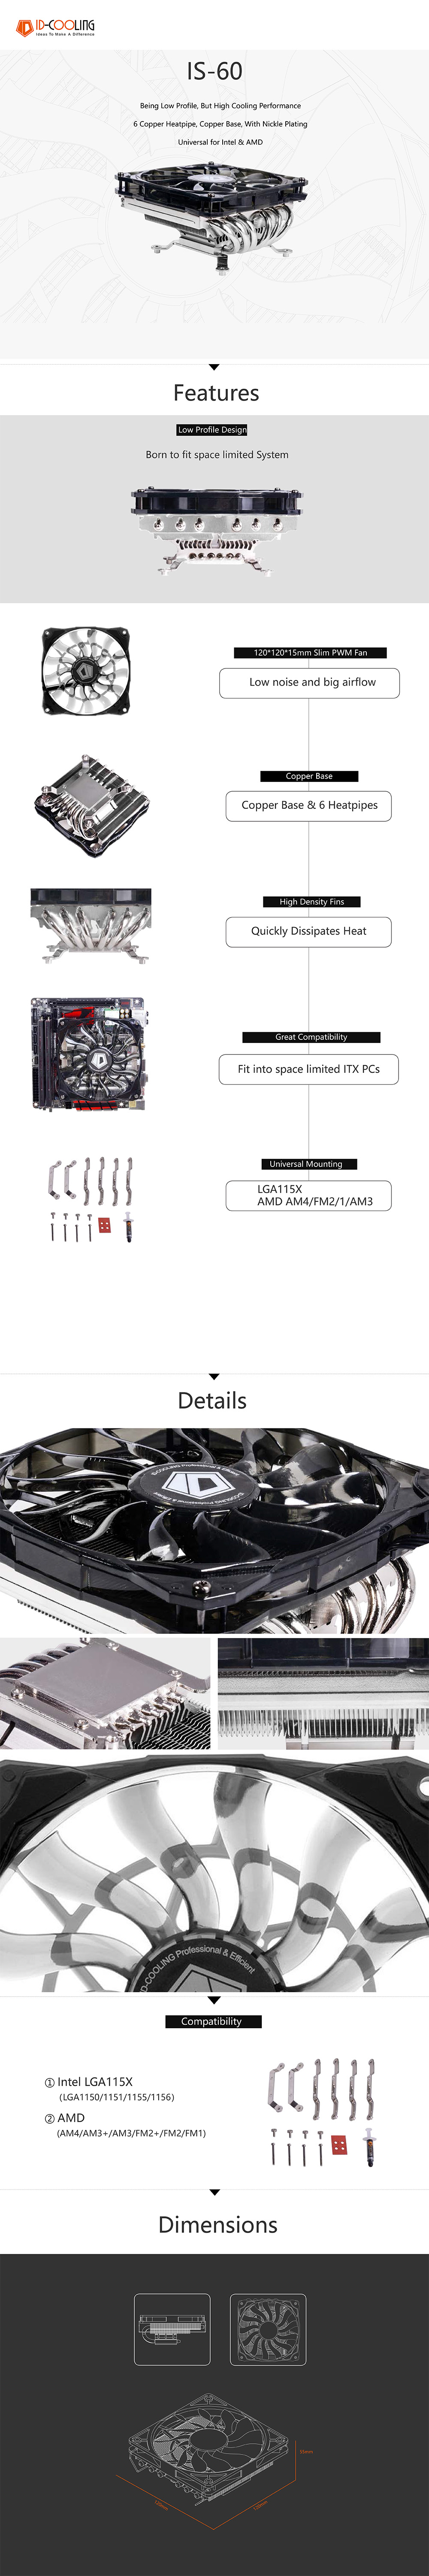 A large marketing image providing additional information about the product ID-COOLING Iceland Series IS-60 Low Profile CPU Cooler - Additional alt info not provided